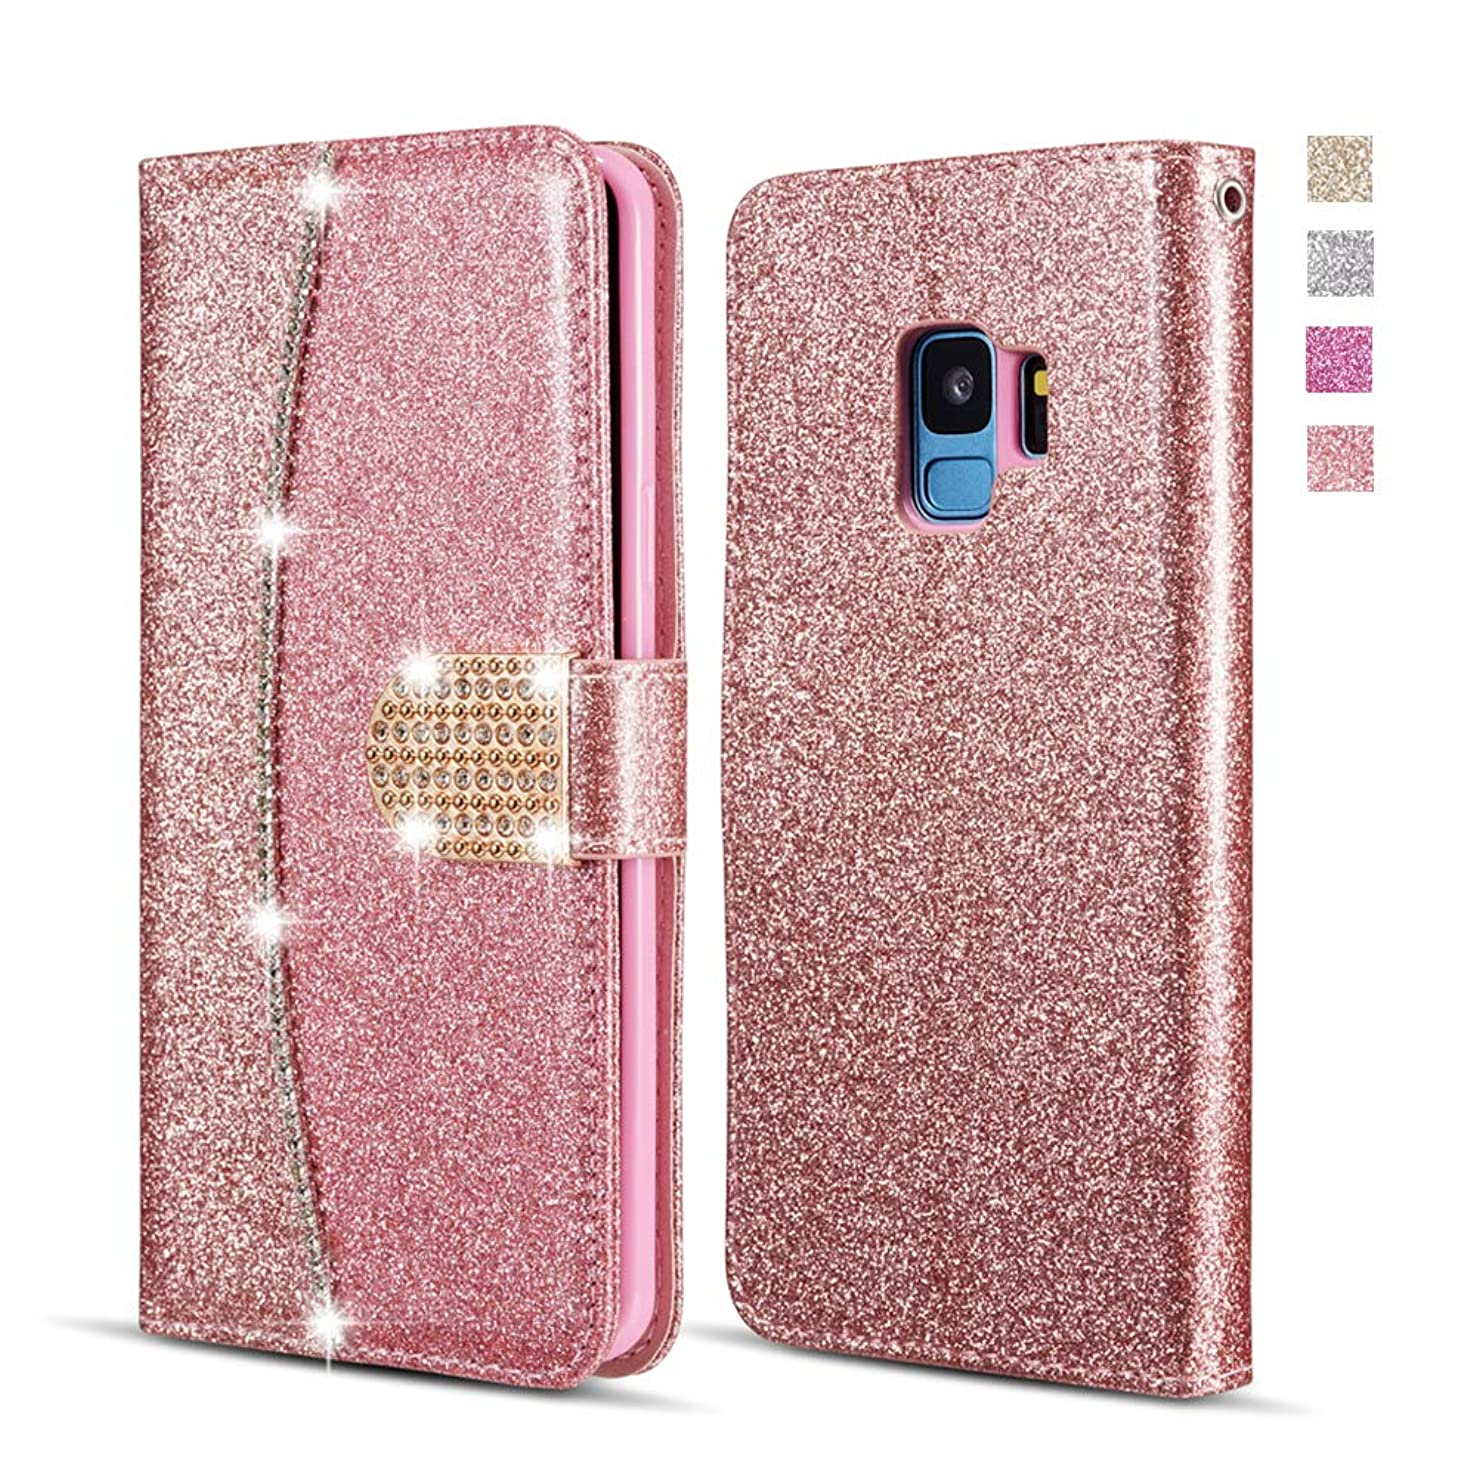 UEEBAI Wallet Flip Case for Huawei Mate 20 Lite,Premium Glitter Glossy PU Leather Case with Diamond Buckle [Card Slots] [Magnetic Clasp] Stand Function Rhinestone Strap Handbag TPU Cover - Rose Gold